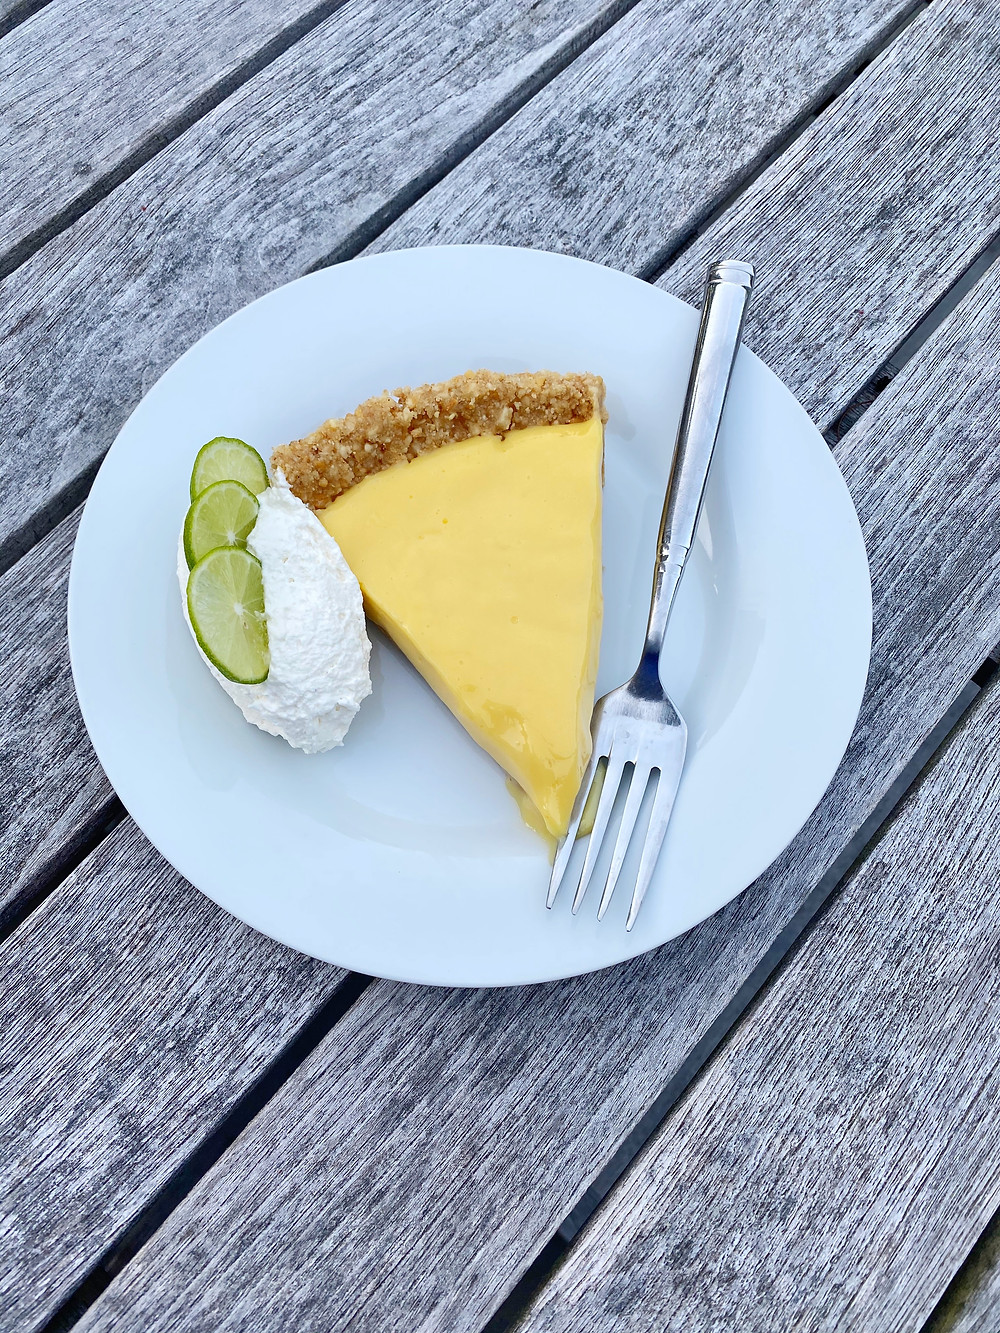 Key Lime Pie with Cashew Graham Cracker Crust